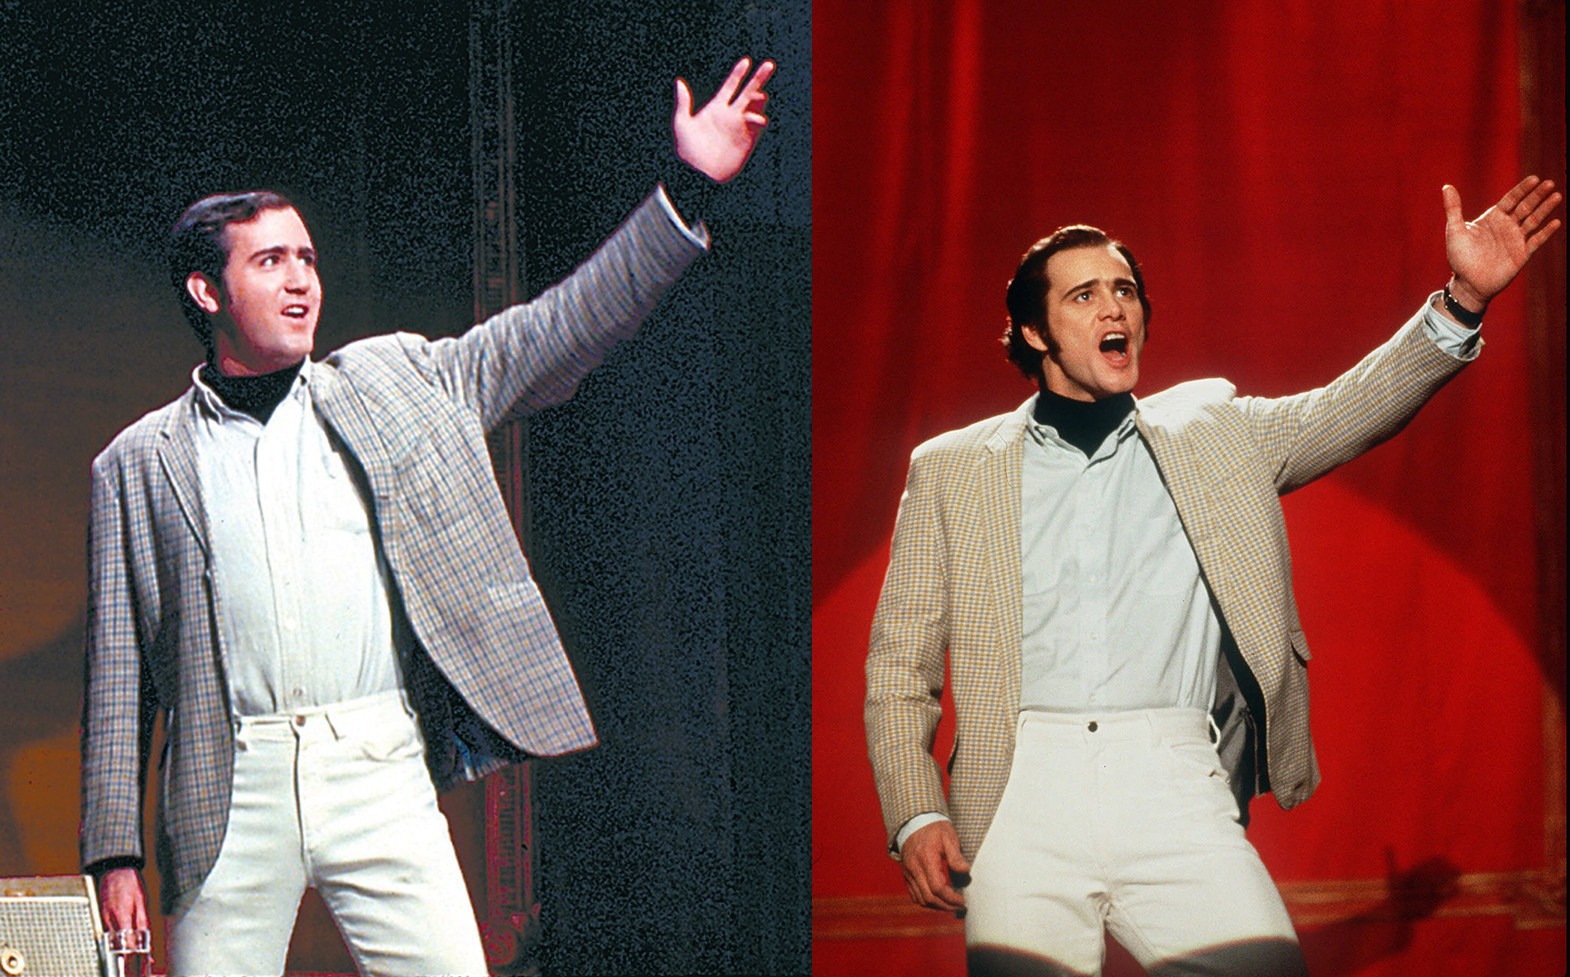 Left: Andy Kaufman on stage for his comedy set. Right: Jim Carrey as Andy Kaufman in a scenes from Man on the Moon,1999). Photo source: The Hollywood Reporter .